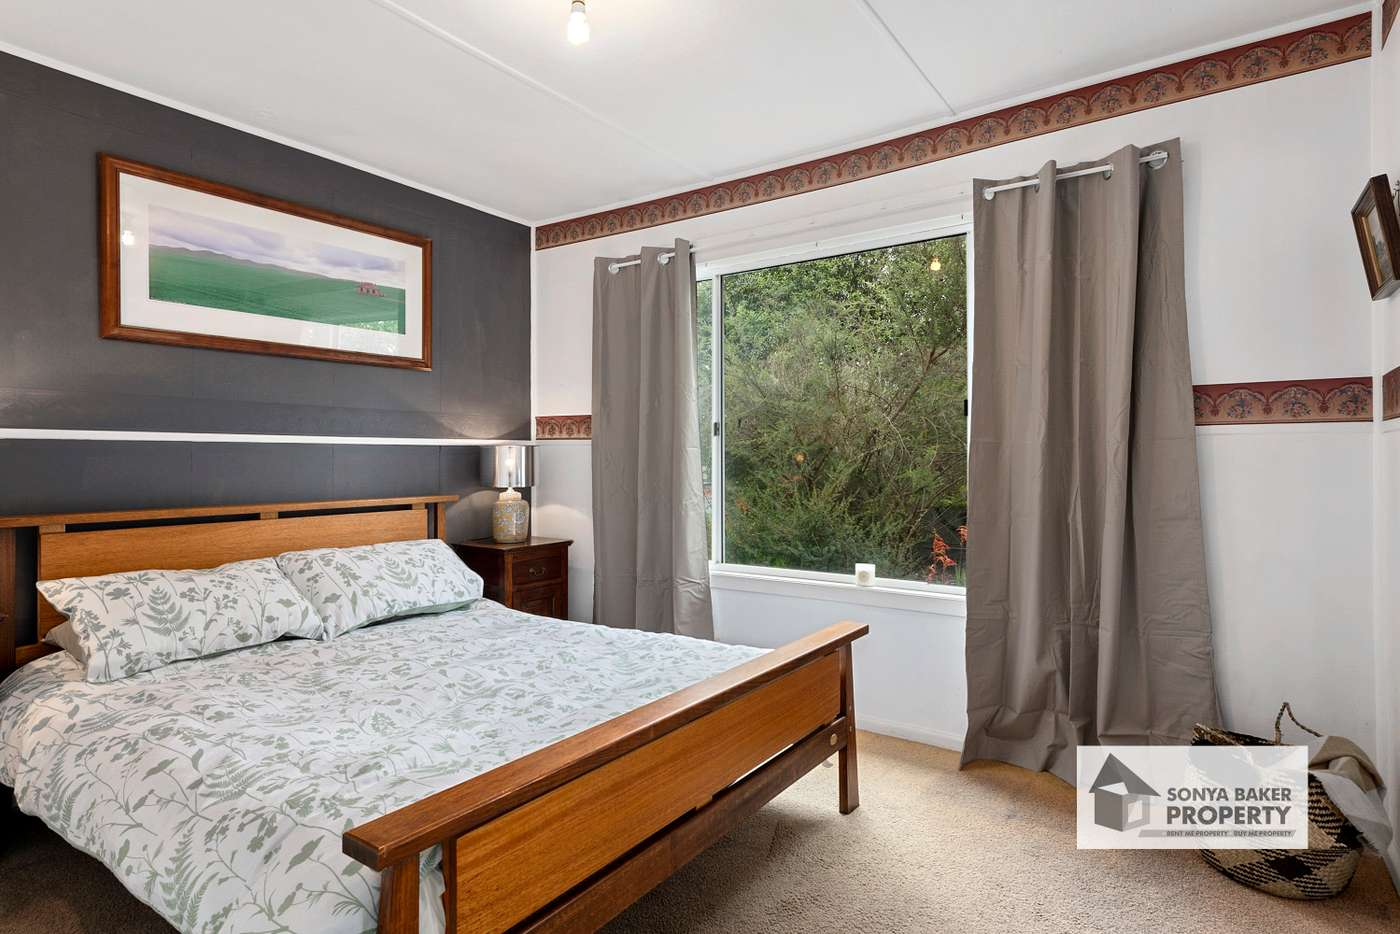 Fifth view of Homely house listing, 16 Hales Street, Wynyard TAS 7325